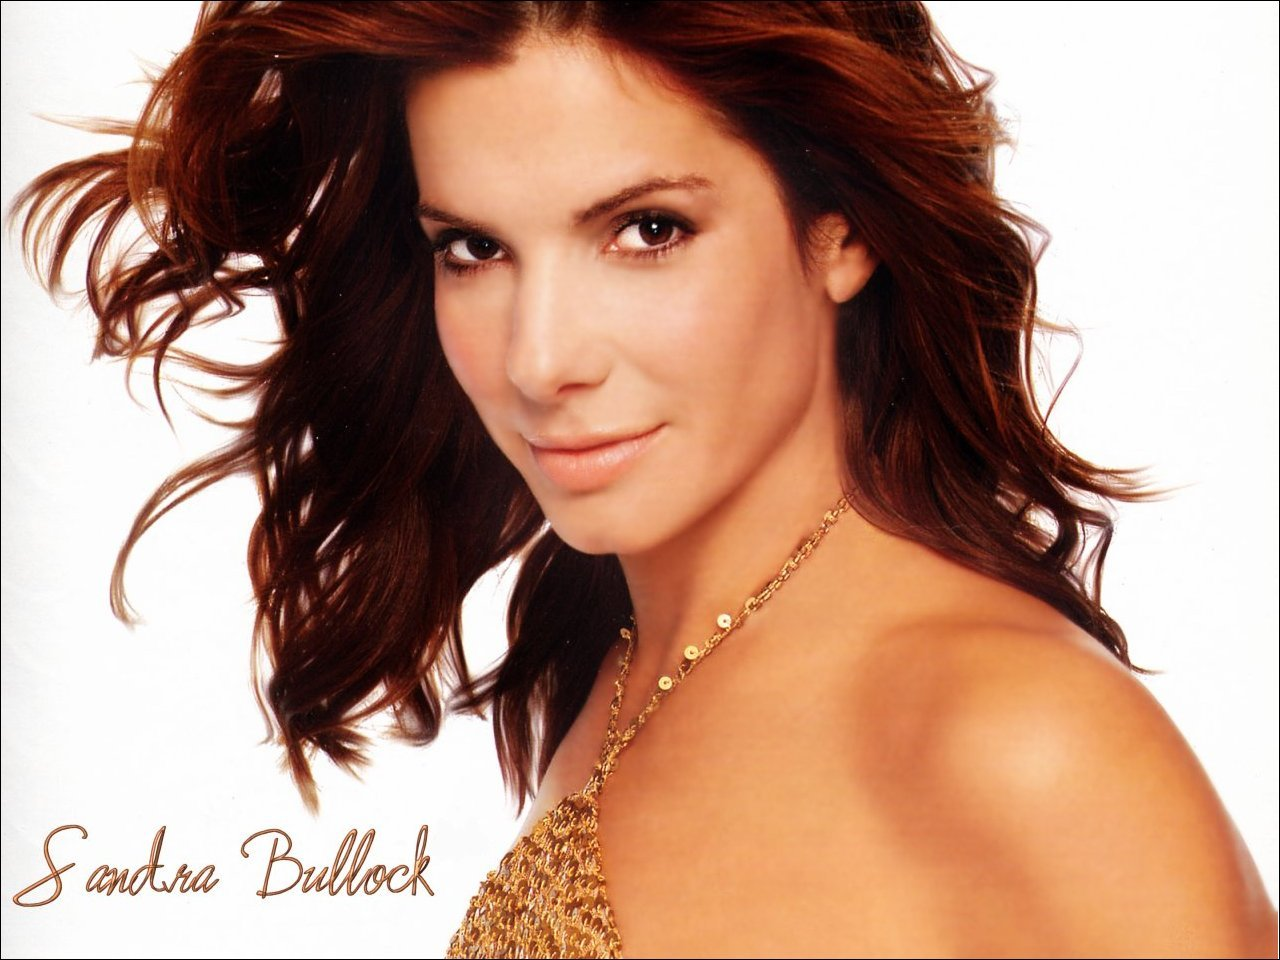 sandra bullock wallpapers